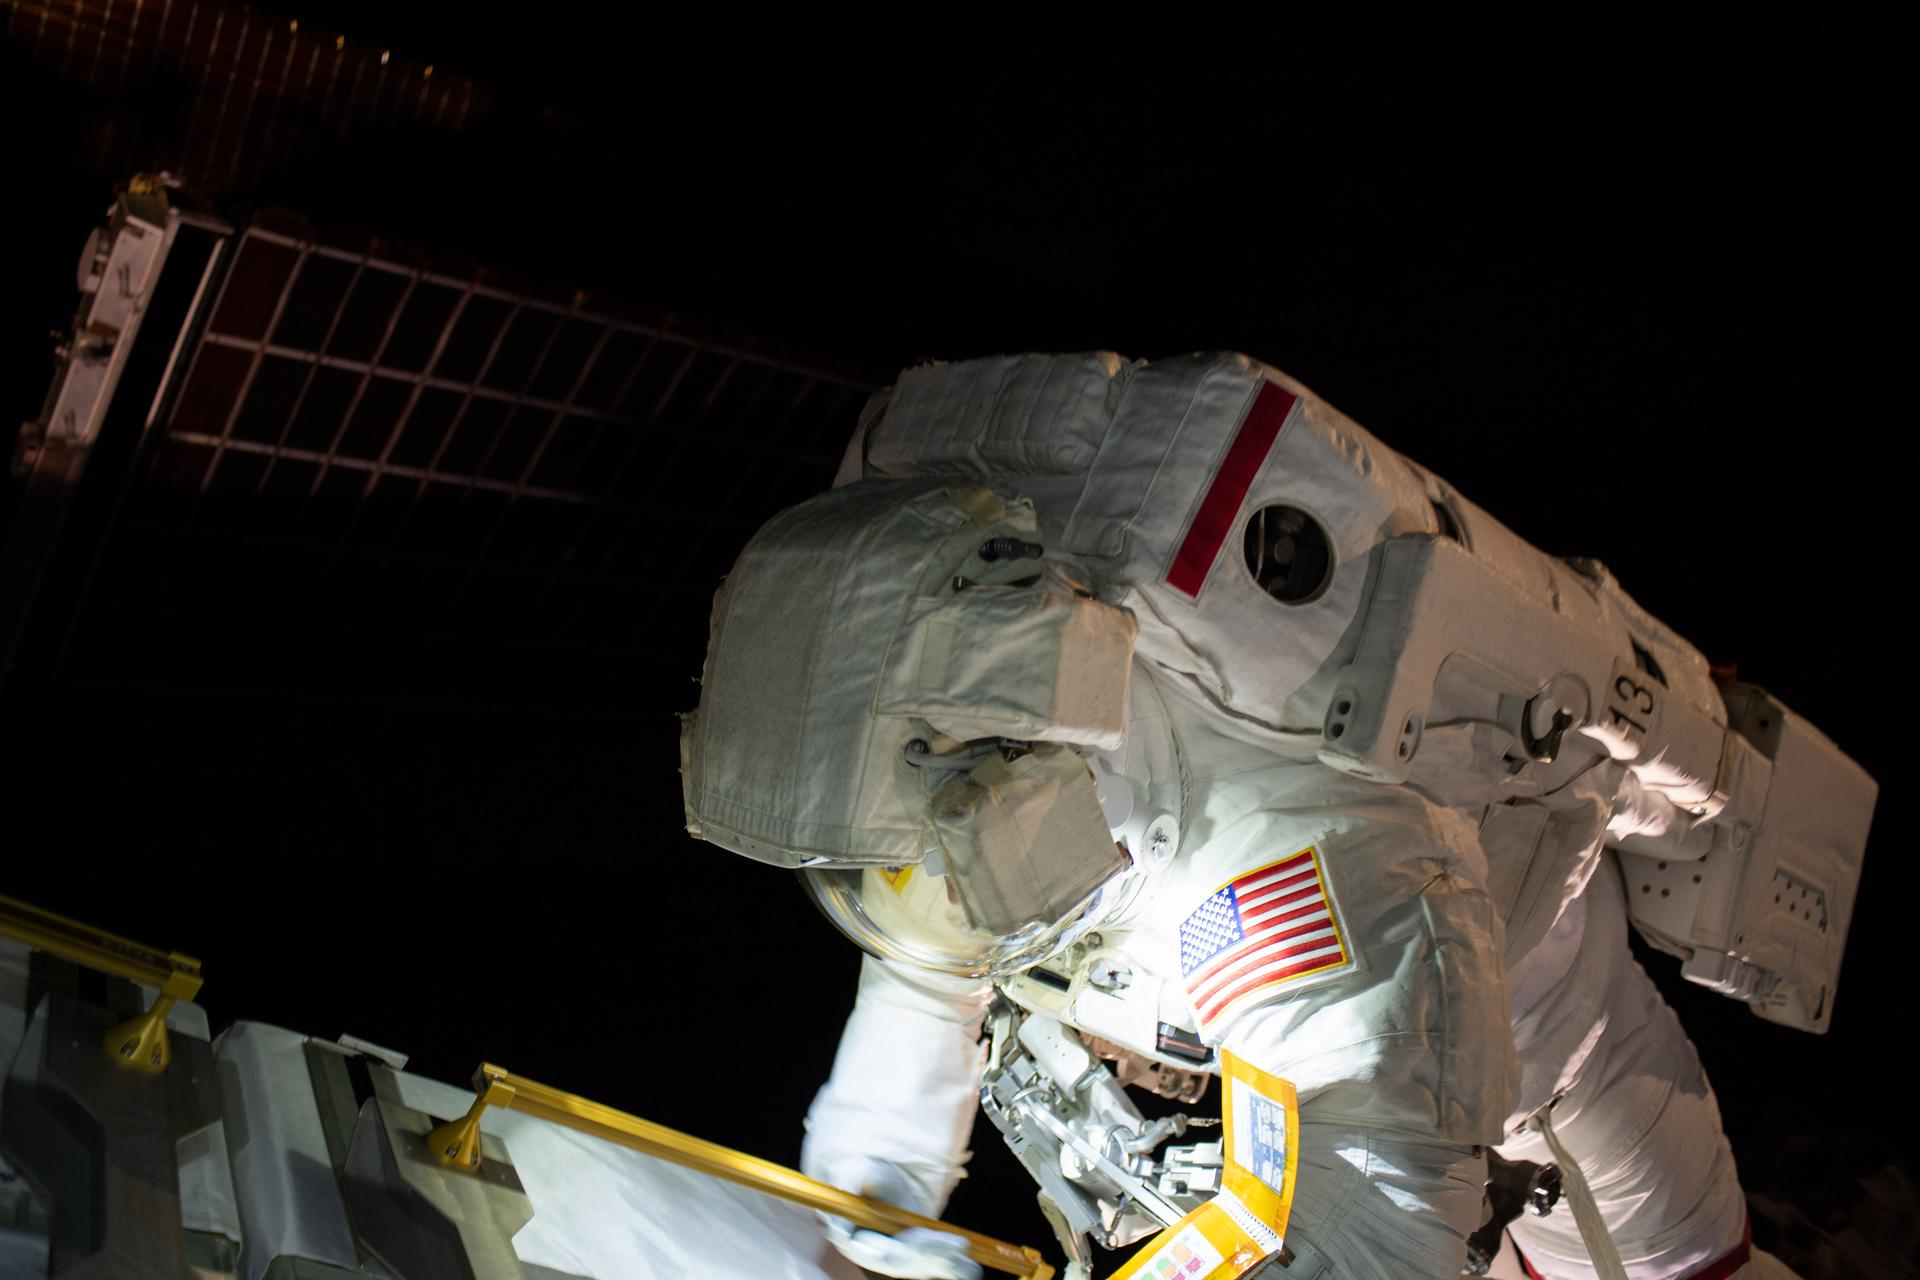 On March 22, Anne McClain works on the International Space Station's Port-4 truss structure during a 6-hour, 39-minute spacewalk.